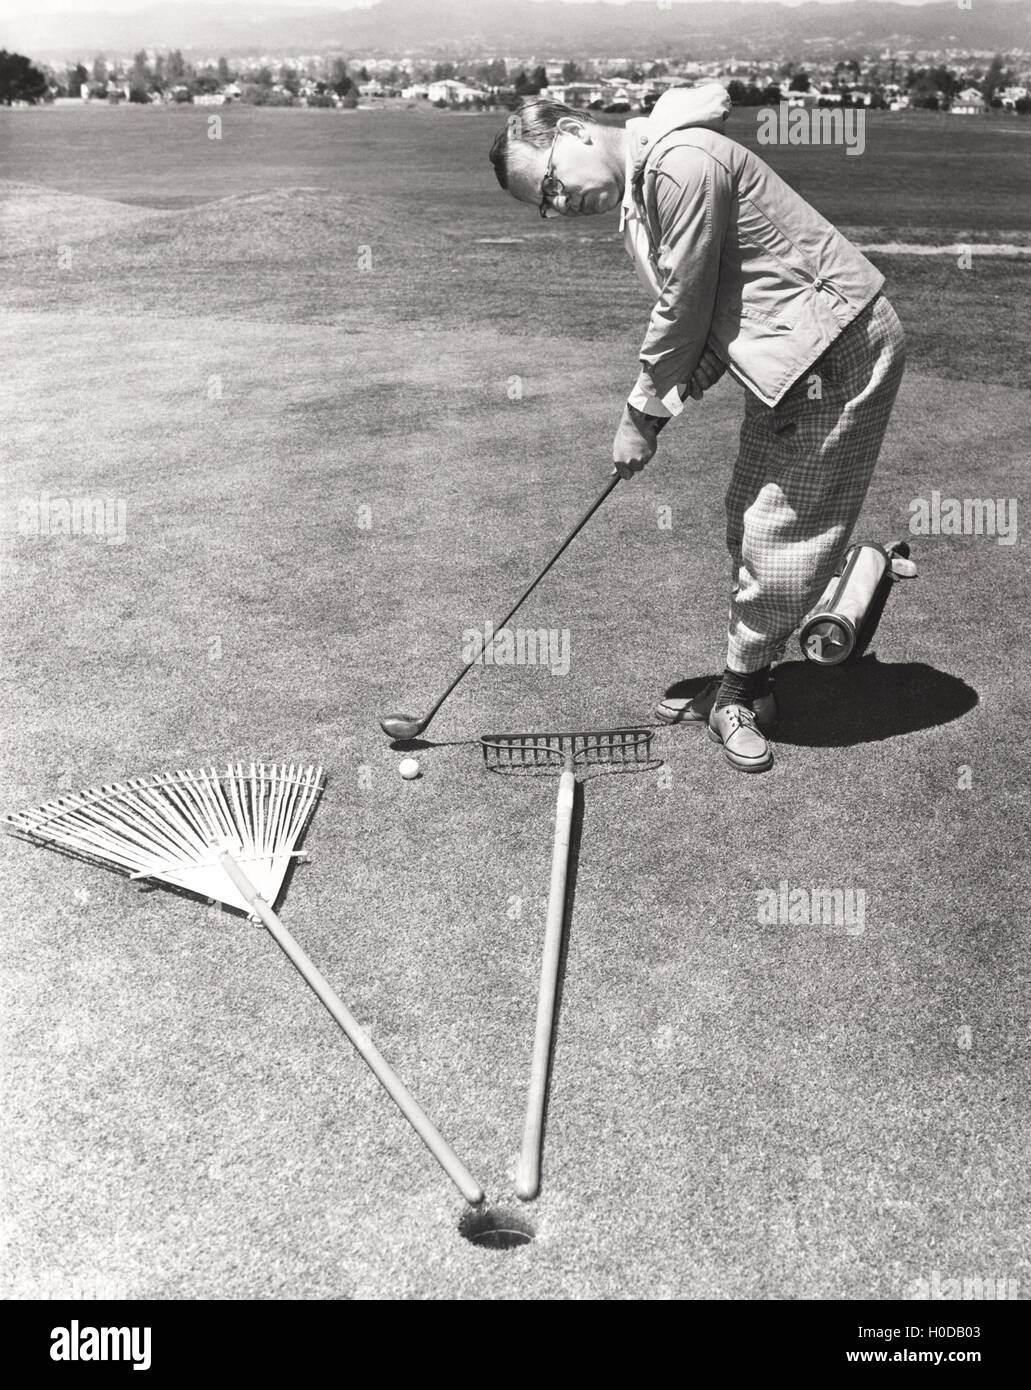 Caught between a rake and a gardening fork on the putting green - Stock Image